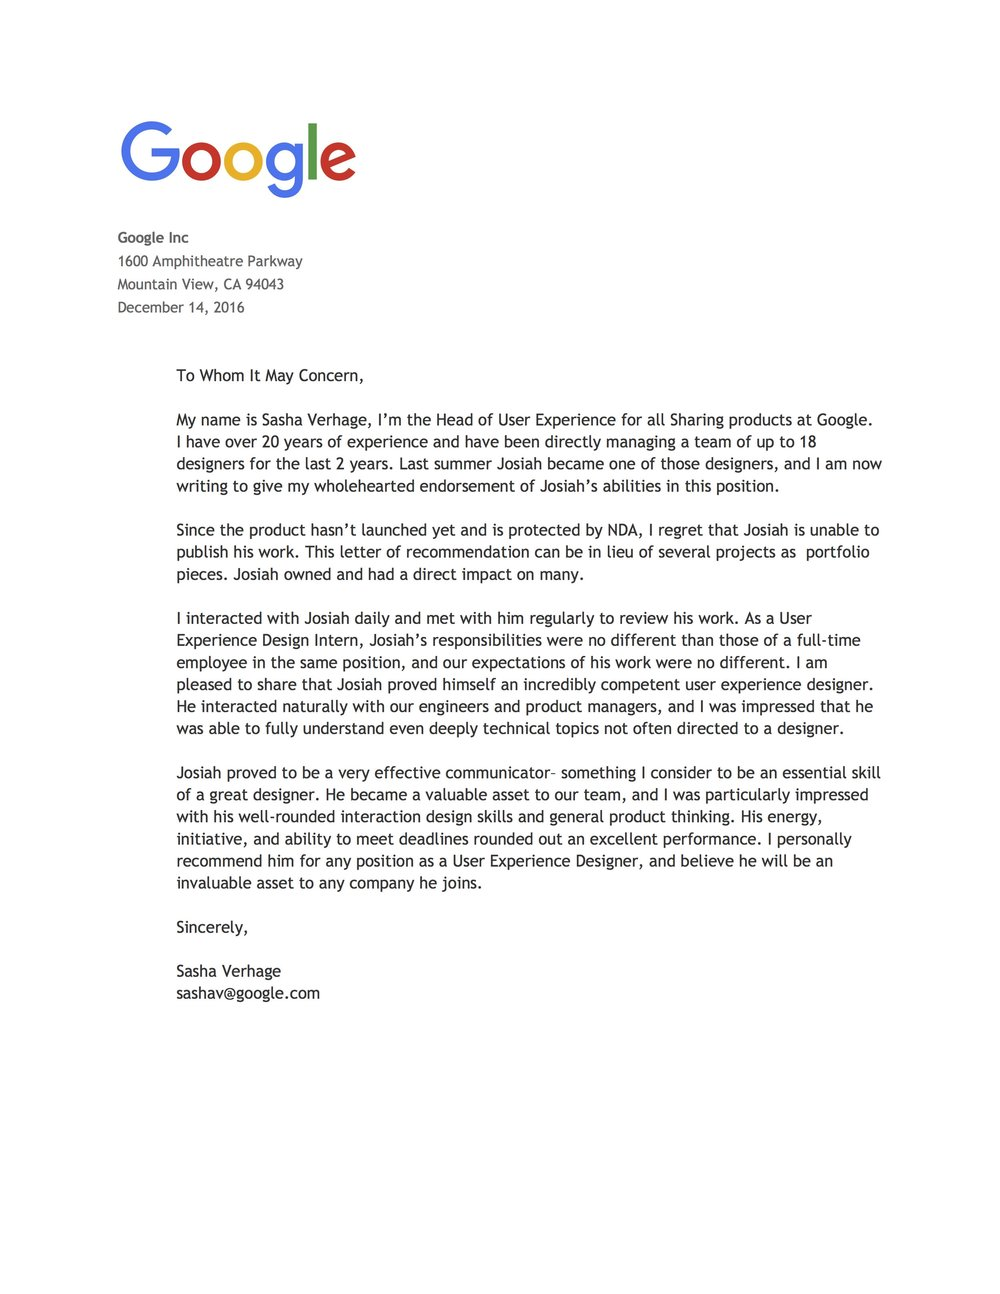 Letter of Recommendation from UX Director Sasha Verhage